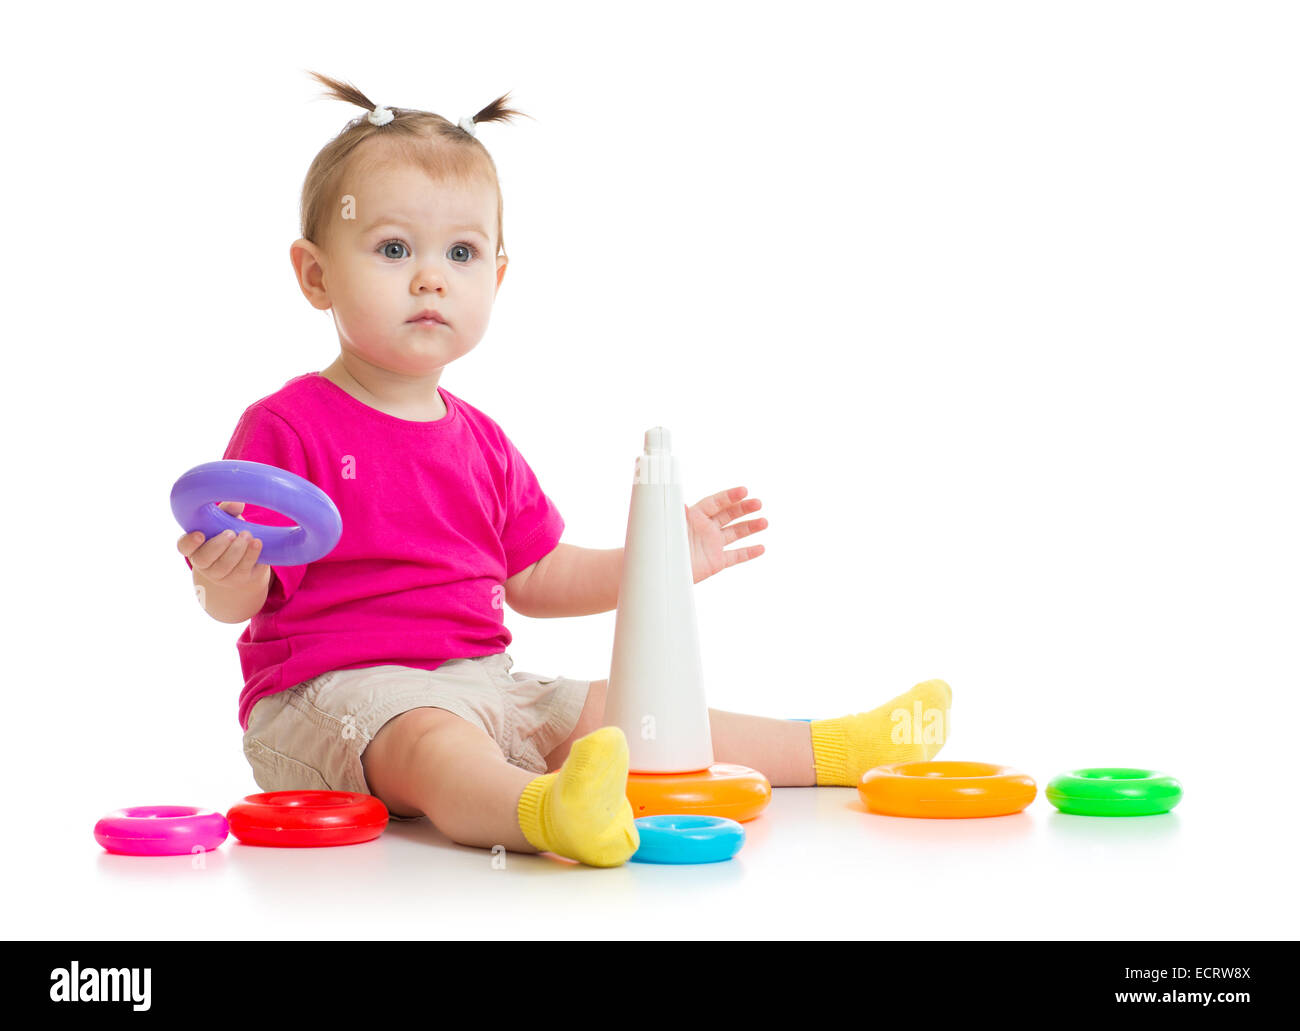 baby playing with colorful pyramid isolated on white - Stock Image